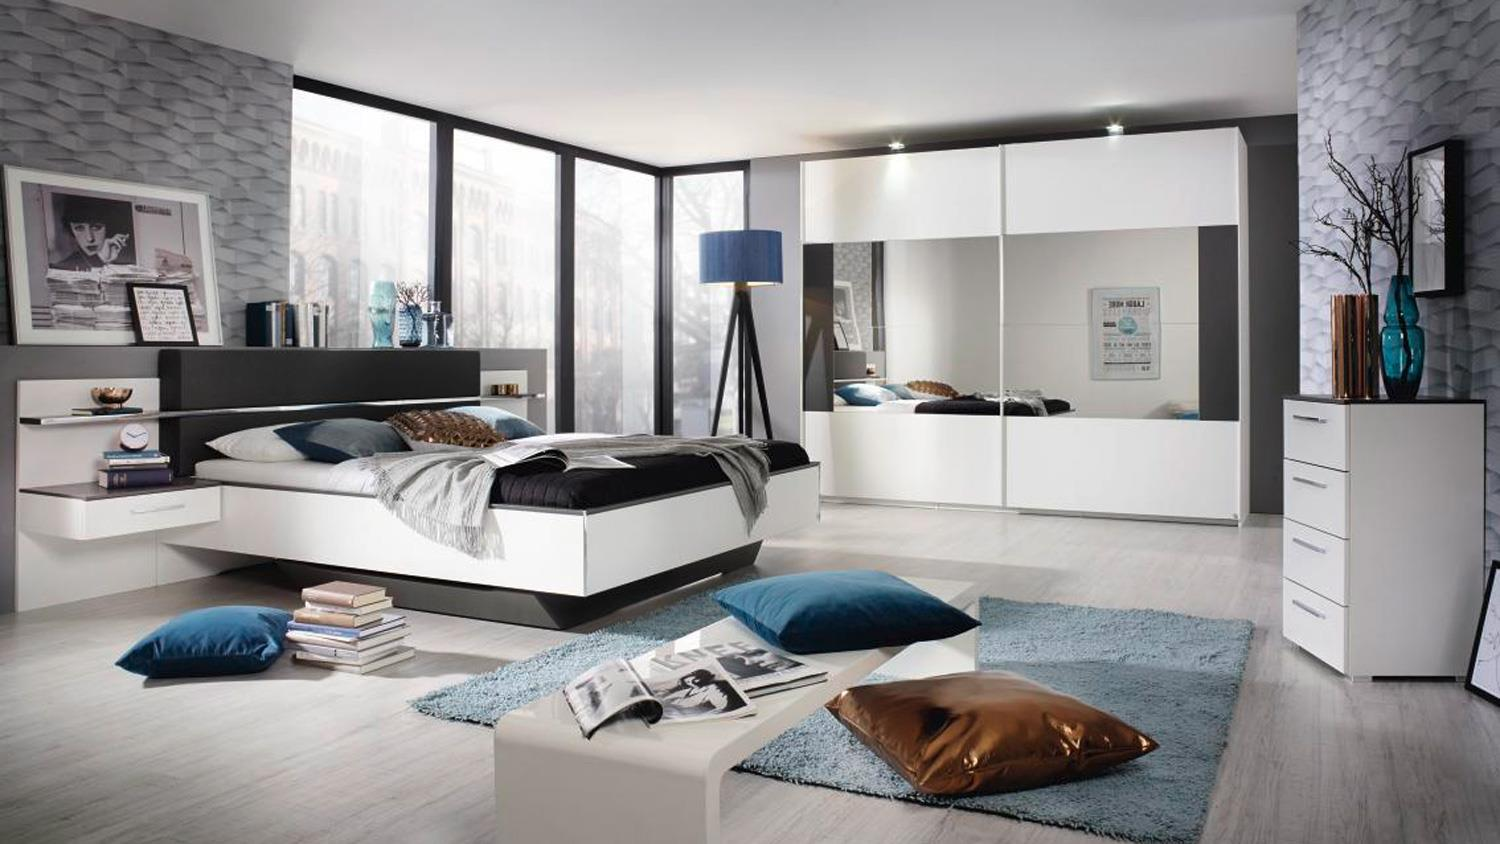 schlafzimmer schlafzimmer set wei schlafzimmer set wei. Black Bedroom Furniture Sets. Home Design Ideas